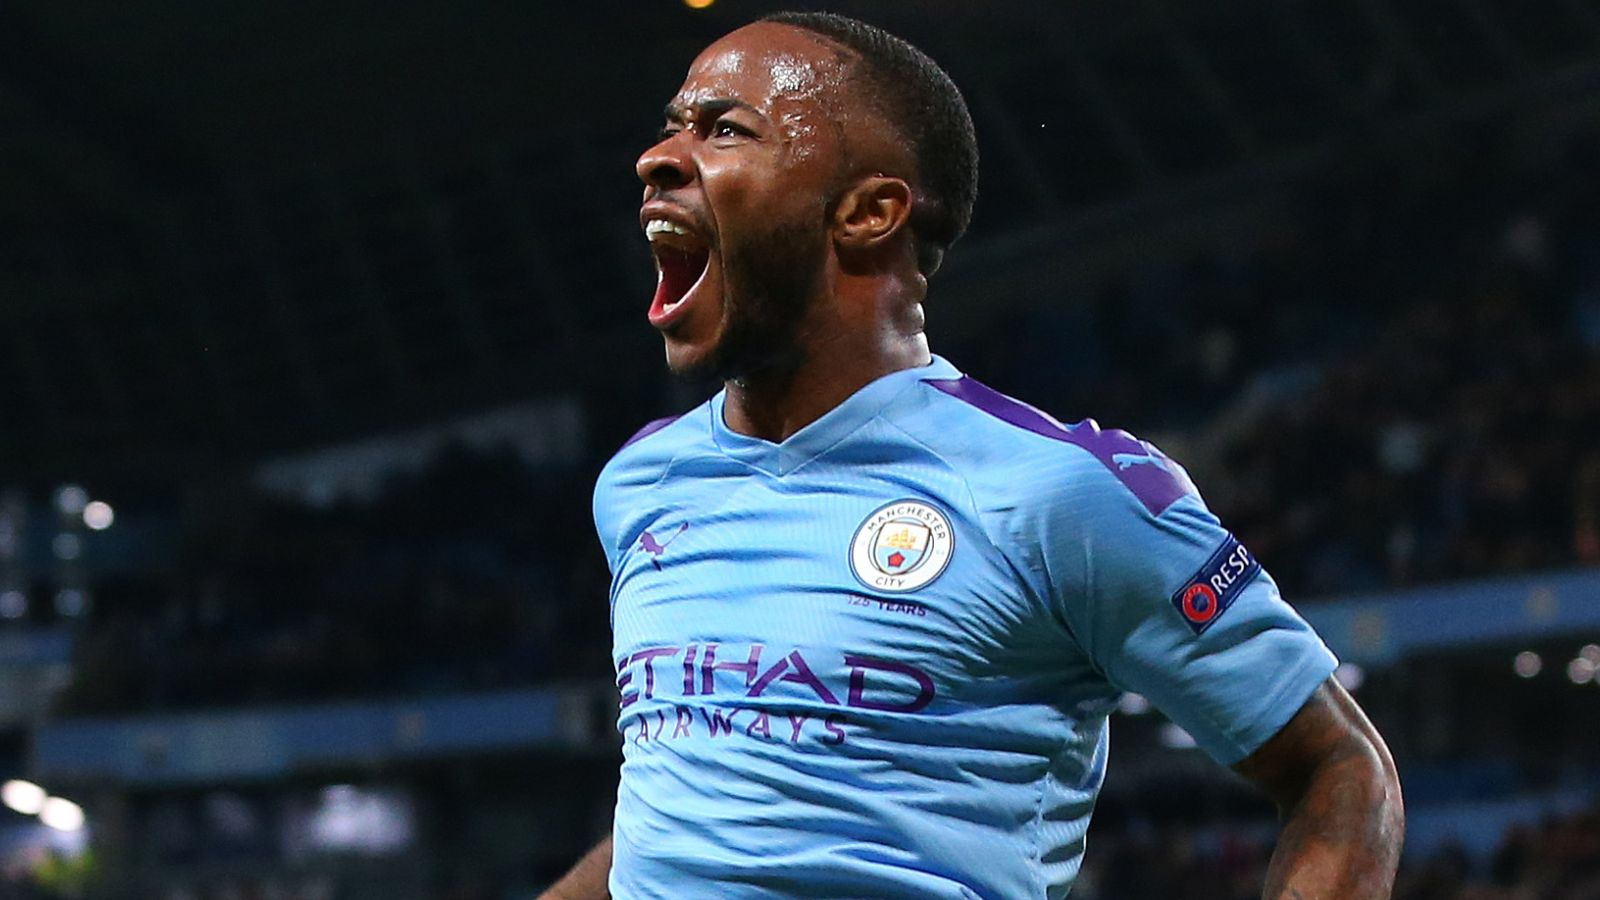 Man City 5-1 Atalanta: Raheem Sterling scores quickfire hat-trick